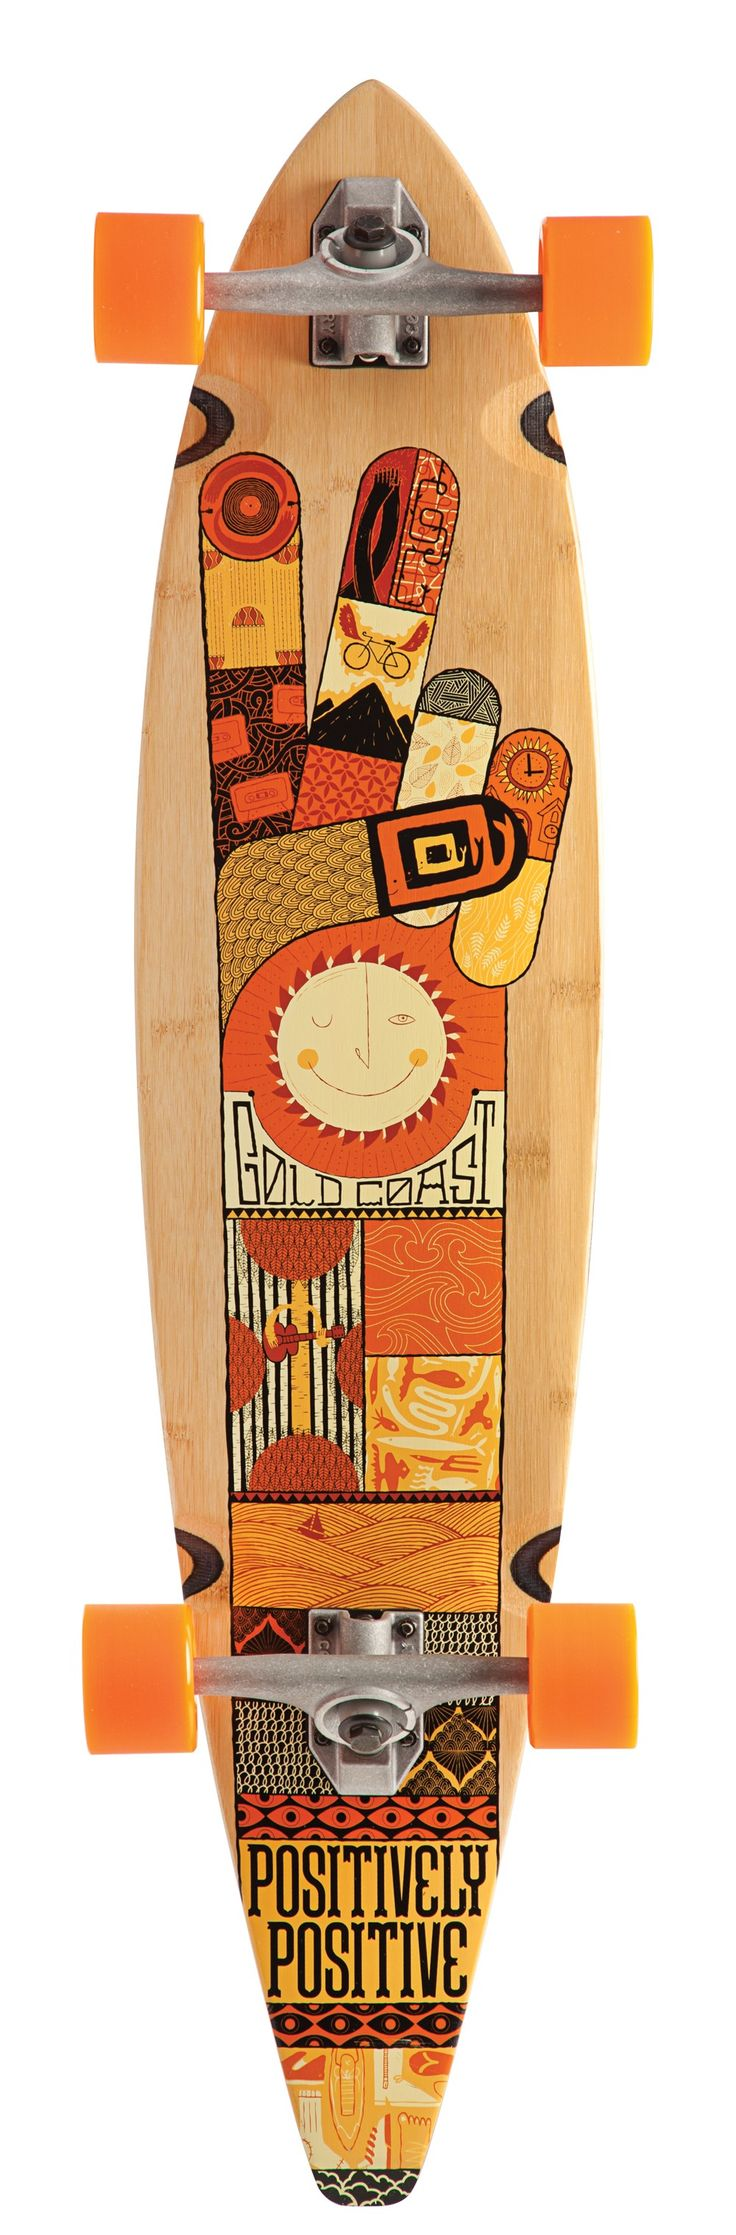 Skateboard clip art images skateboard stock photos amp clipart - New Drop Through Pintail Longboard Completes Decks In Stock The Design Leader In Skateboarding